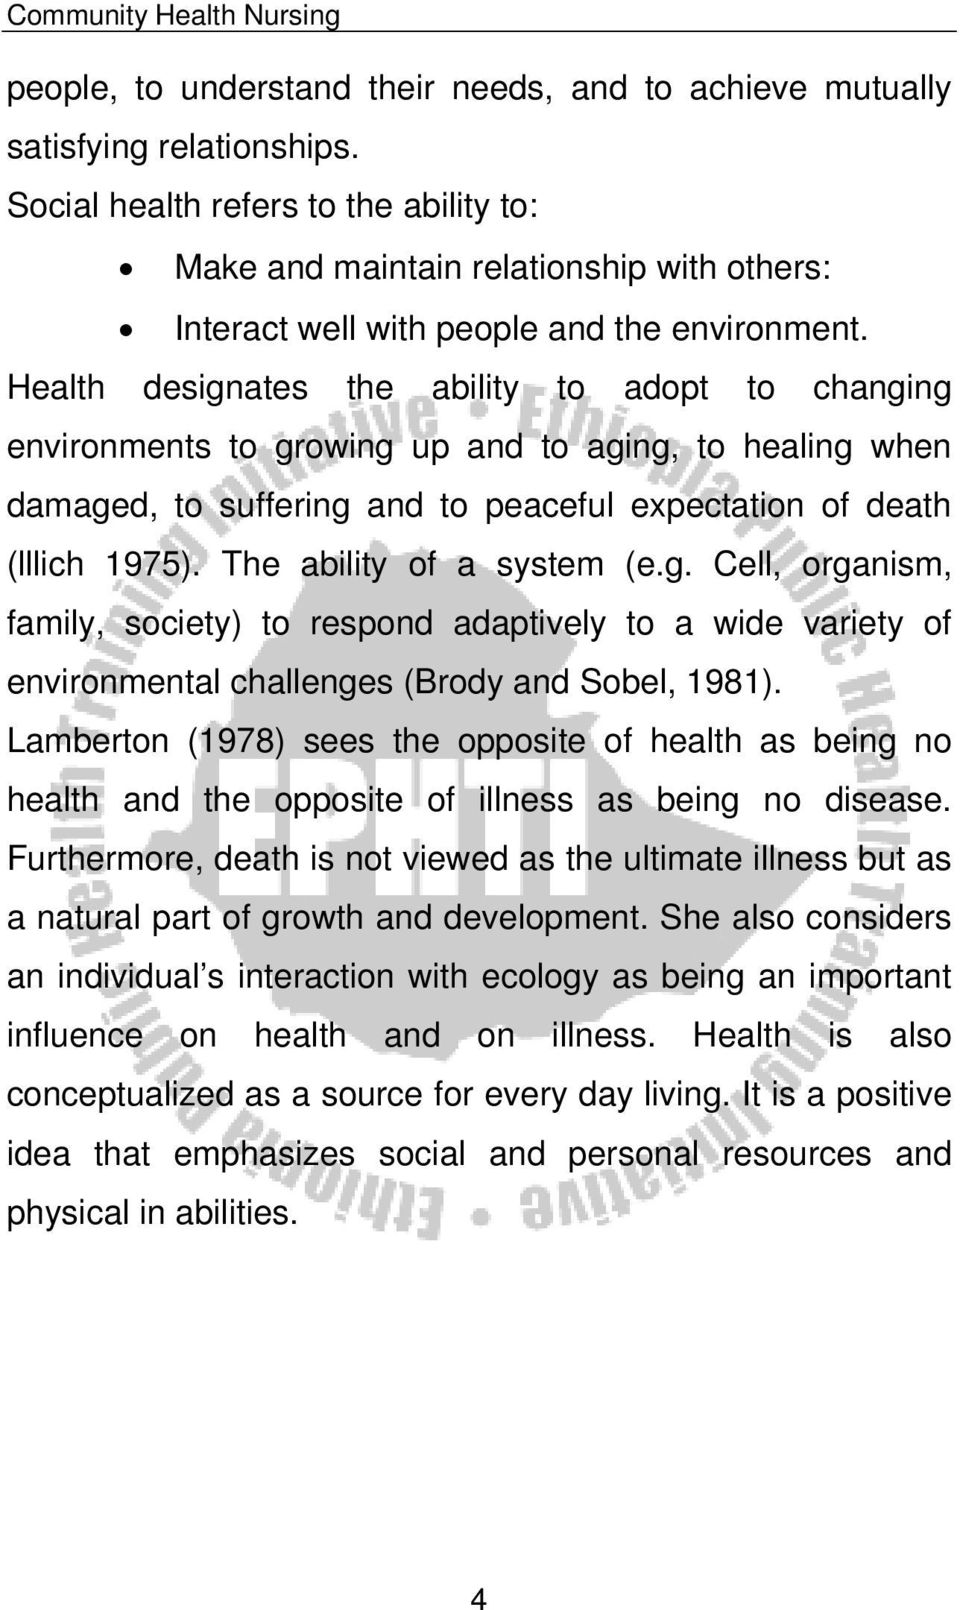 Health designates the ability to adopt to changing environments to growing up and to aging, to healing when damaged, to suffering and to peaceful expectation of death (lllich 1975).